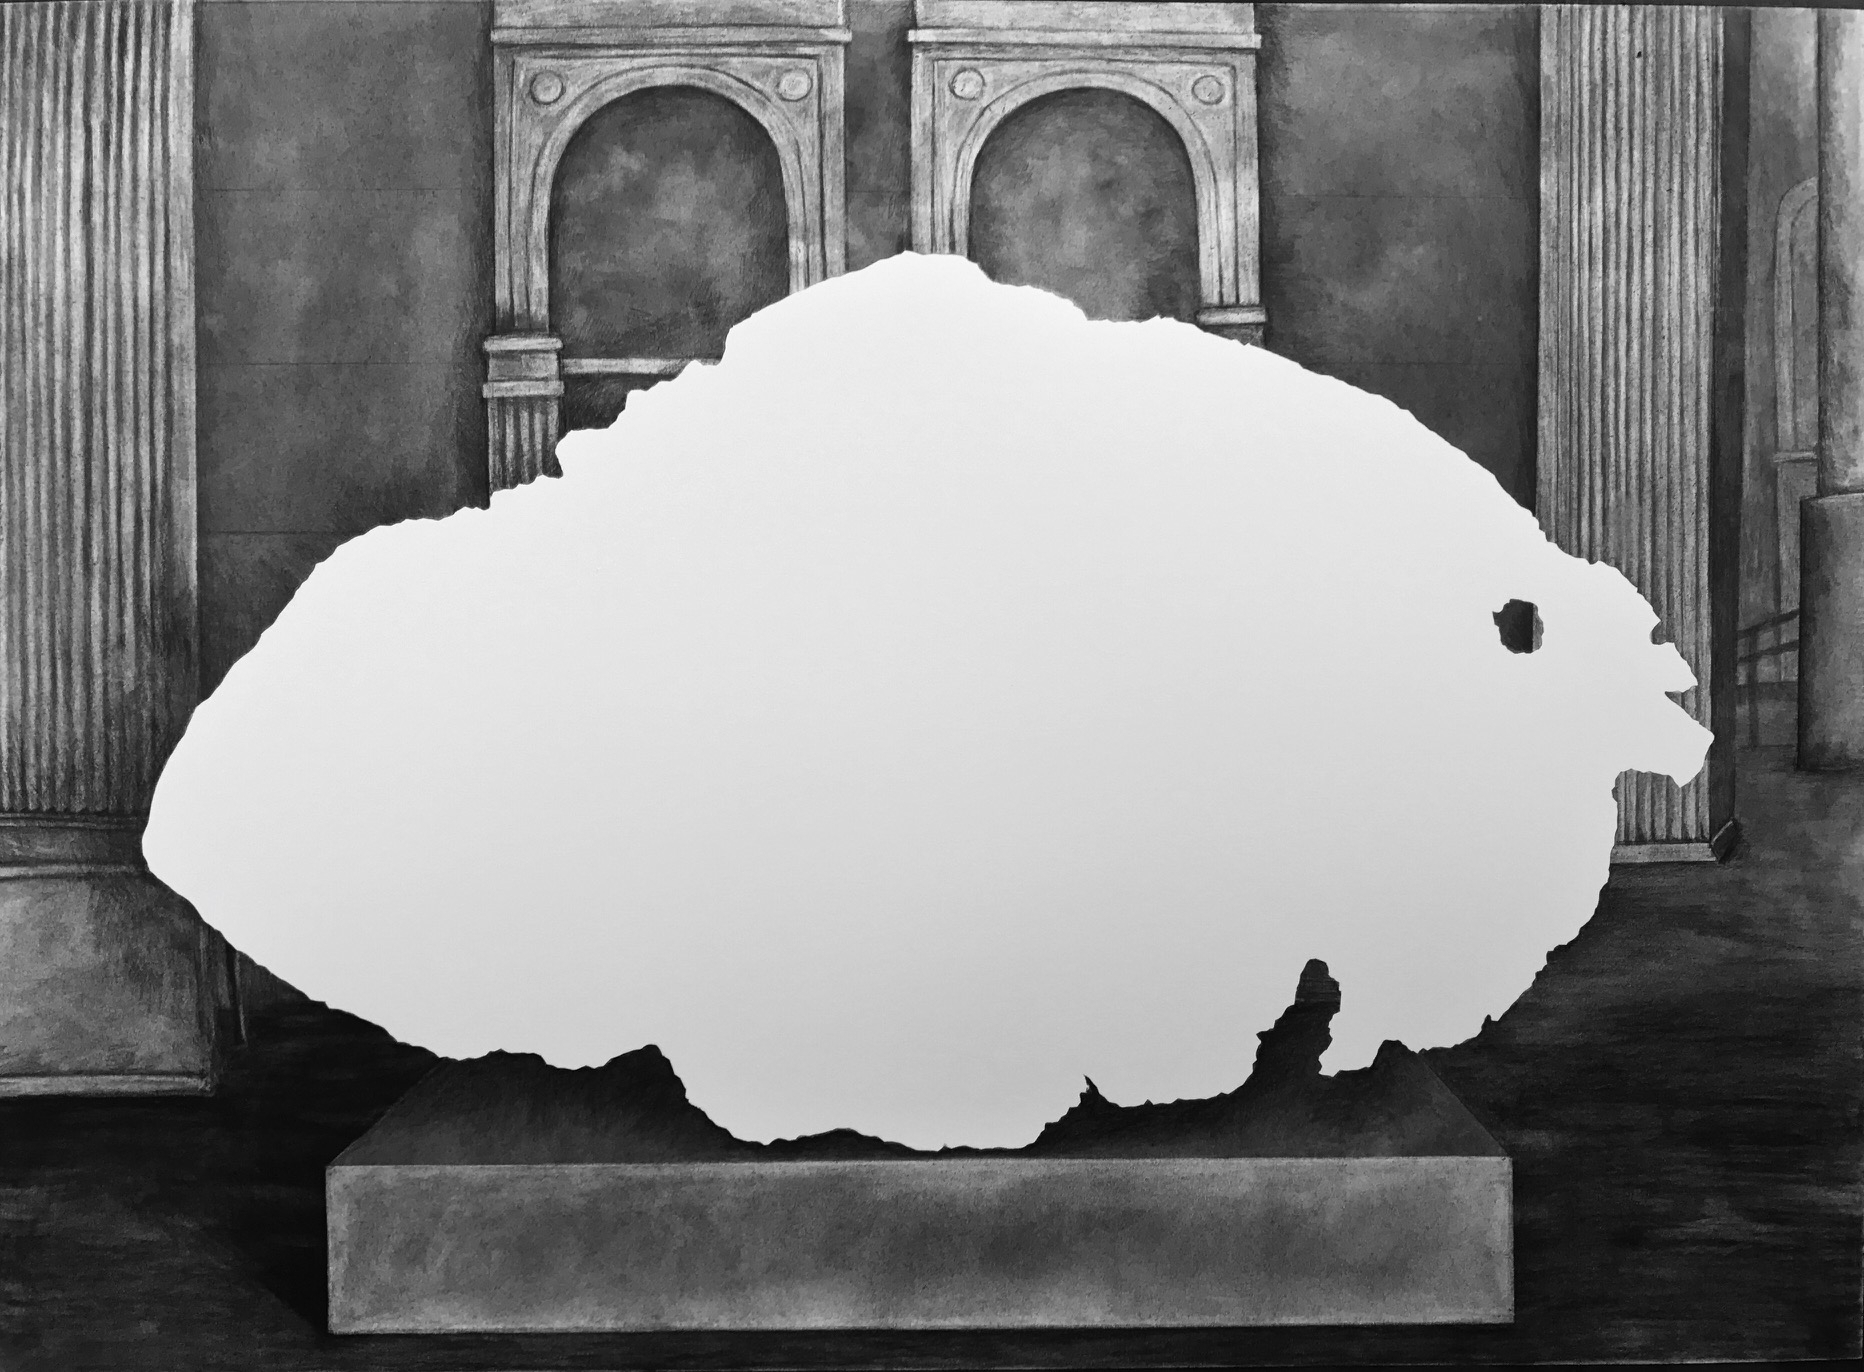 Tomanowos (Willamette Meteorite), display at the American Museum of Natural History, 1906, rejected NAGPRA claim